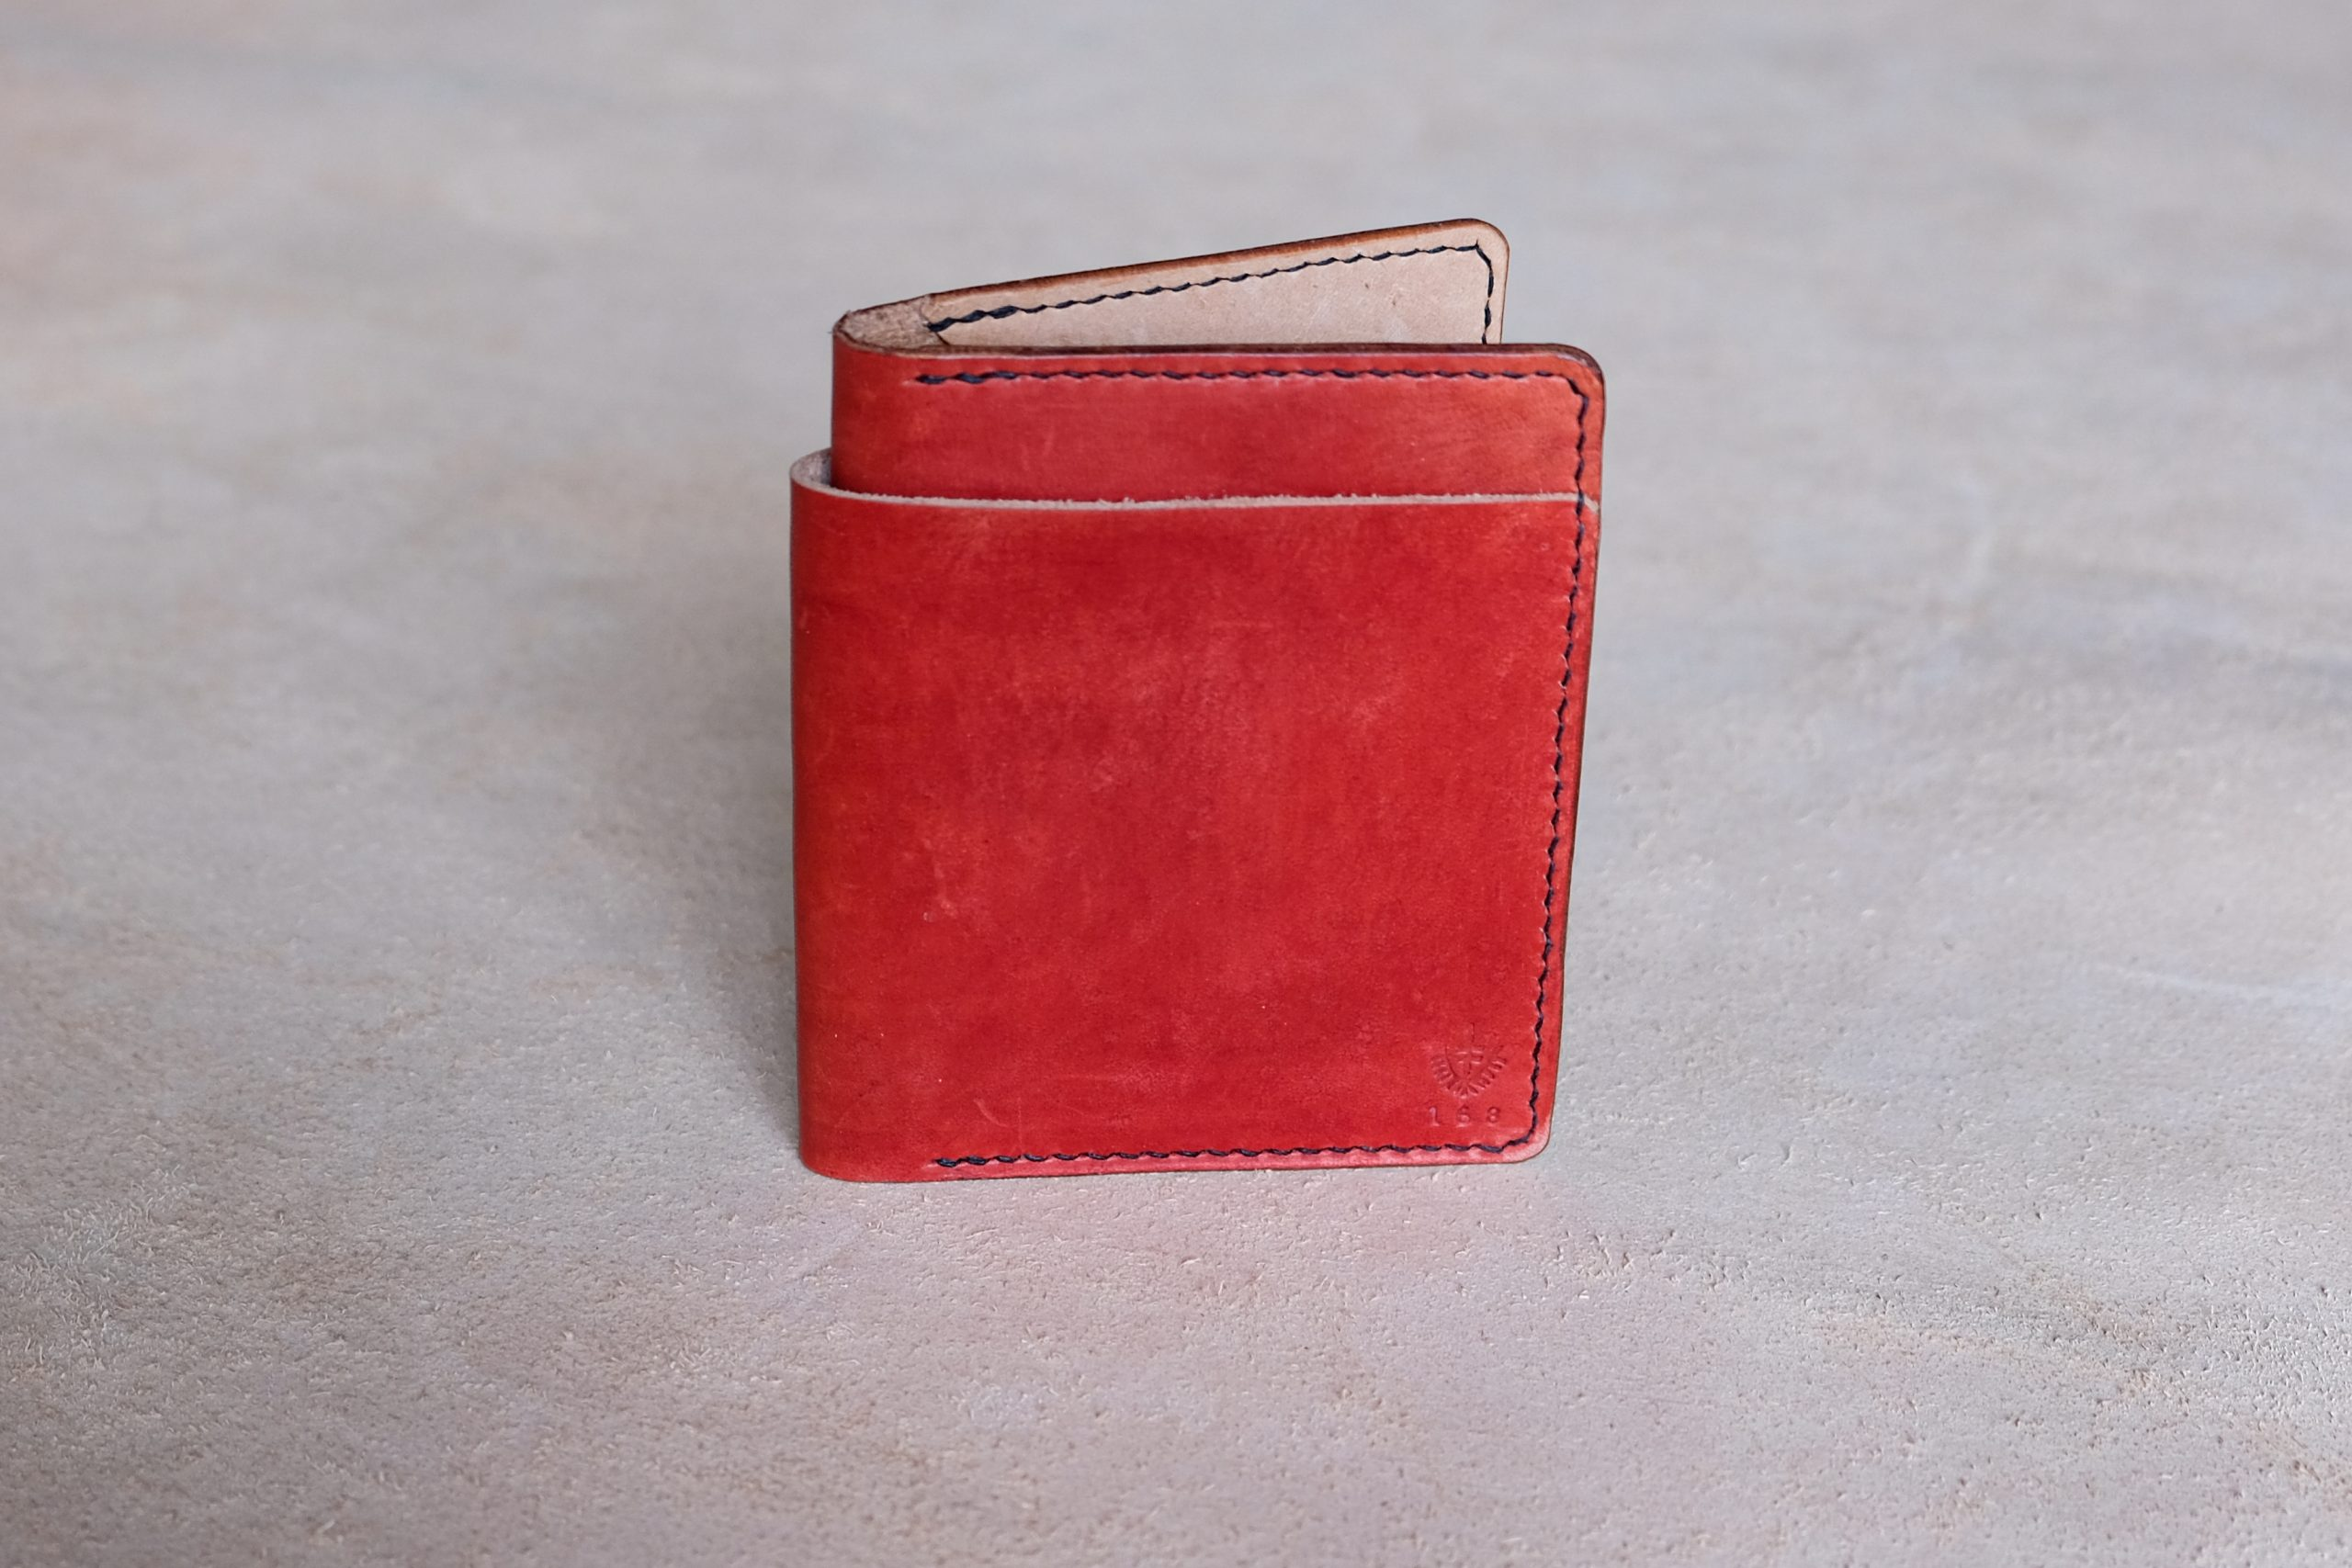 lerif designs large format leather bifold wallet in pomegranate and black stitching on beige background